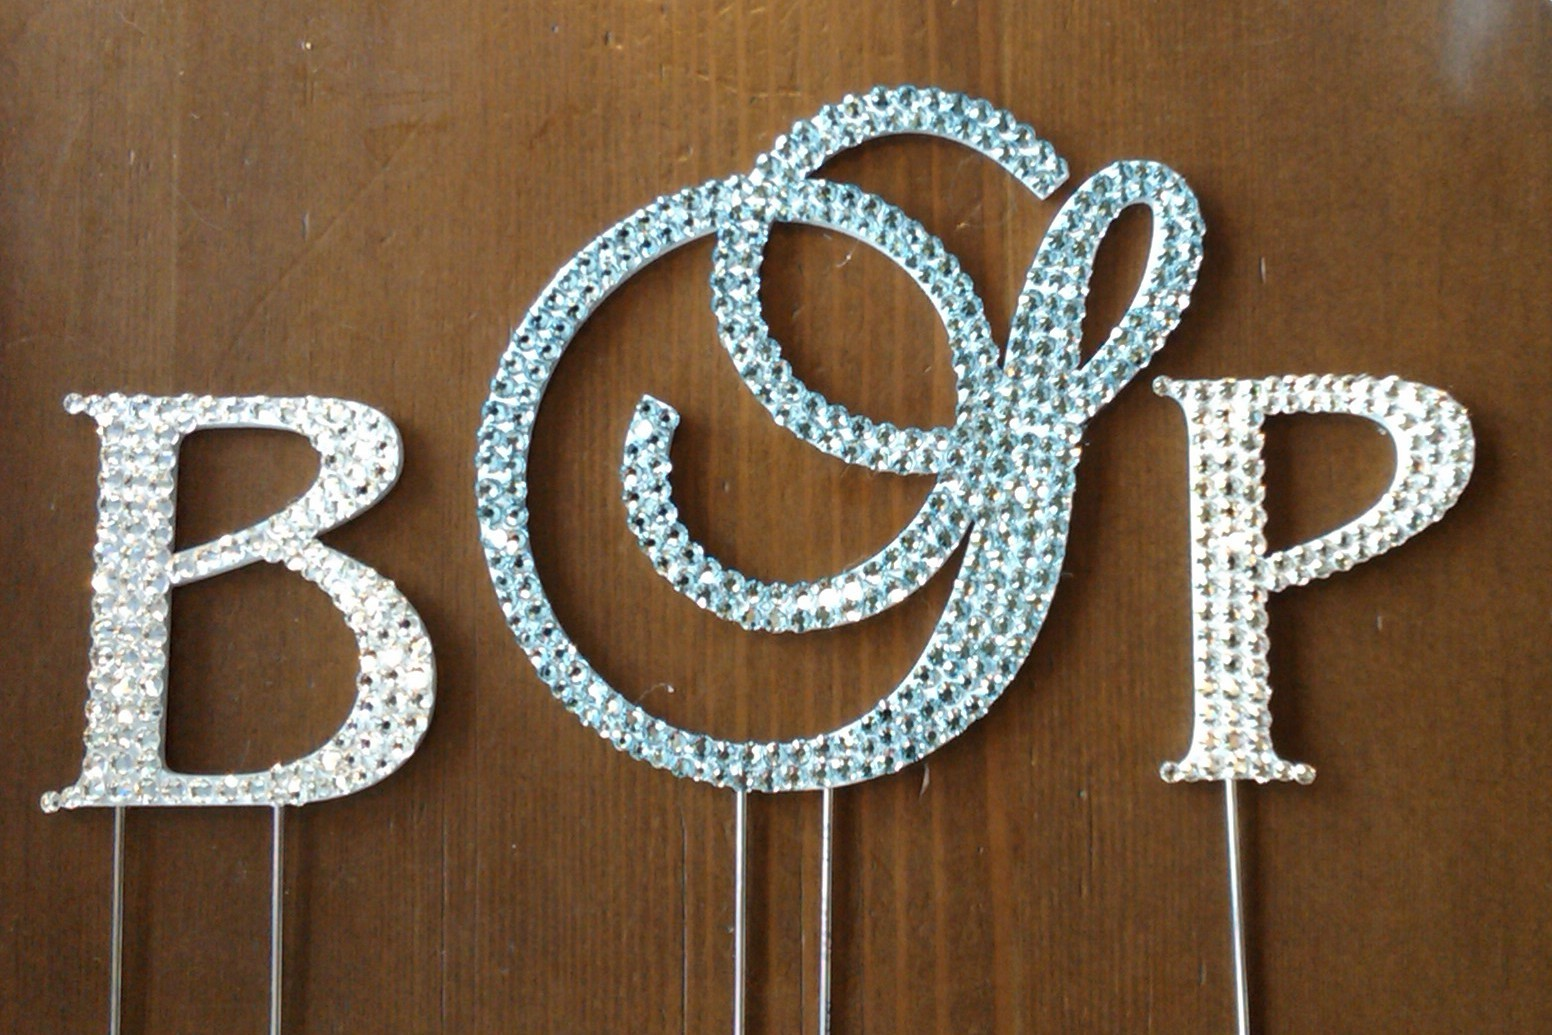 Reception, Flowers & Decor, Cakes, blue, silver, cake, Monogrammed Wedding Cakes, Monogram, Cake topper, Monogram cake topper